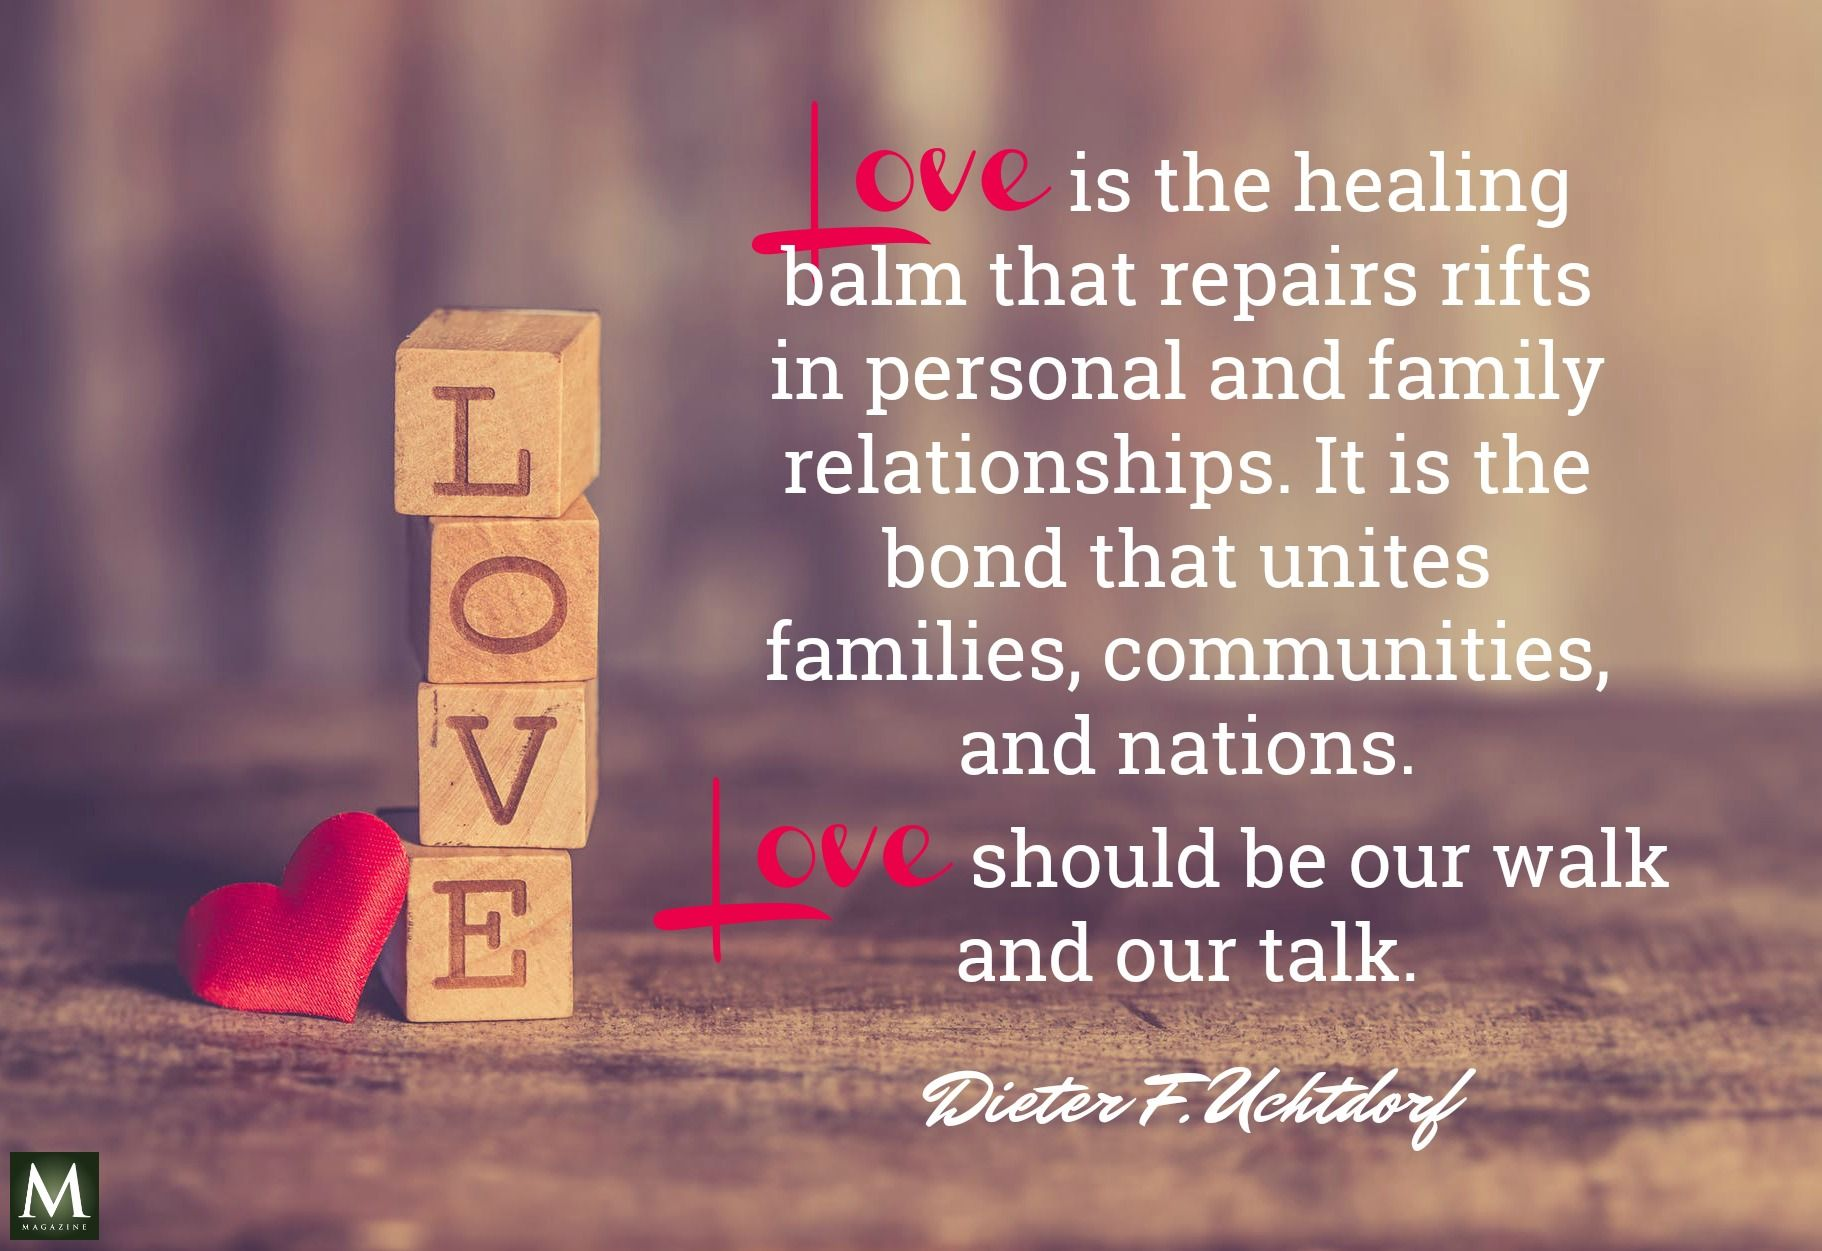 Love Is The Healing Balm That Repairs Rifts In Personal And Family Relationships It Is The Bond That Unites Famili Healing Balm Family Relationships The Balm